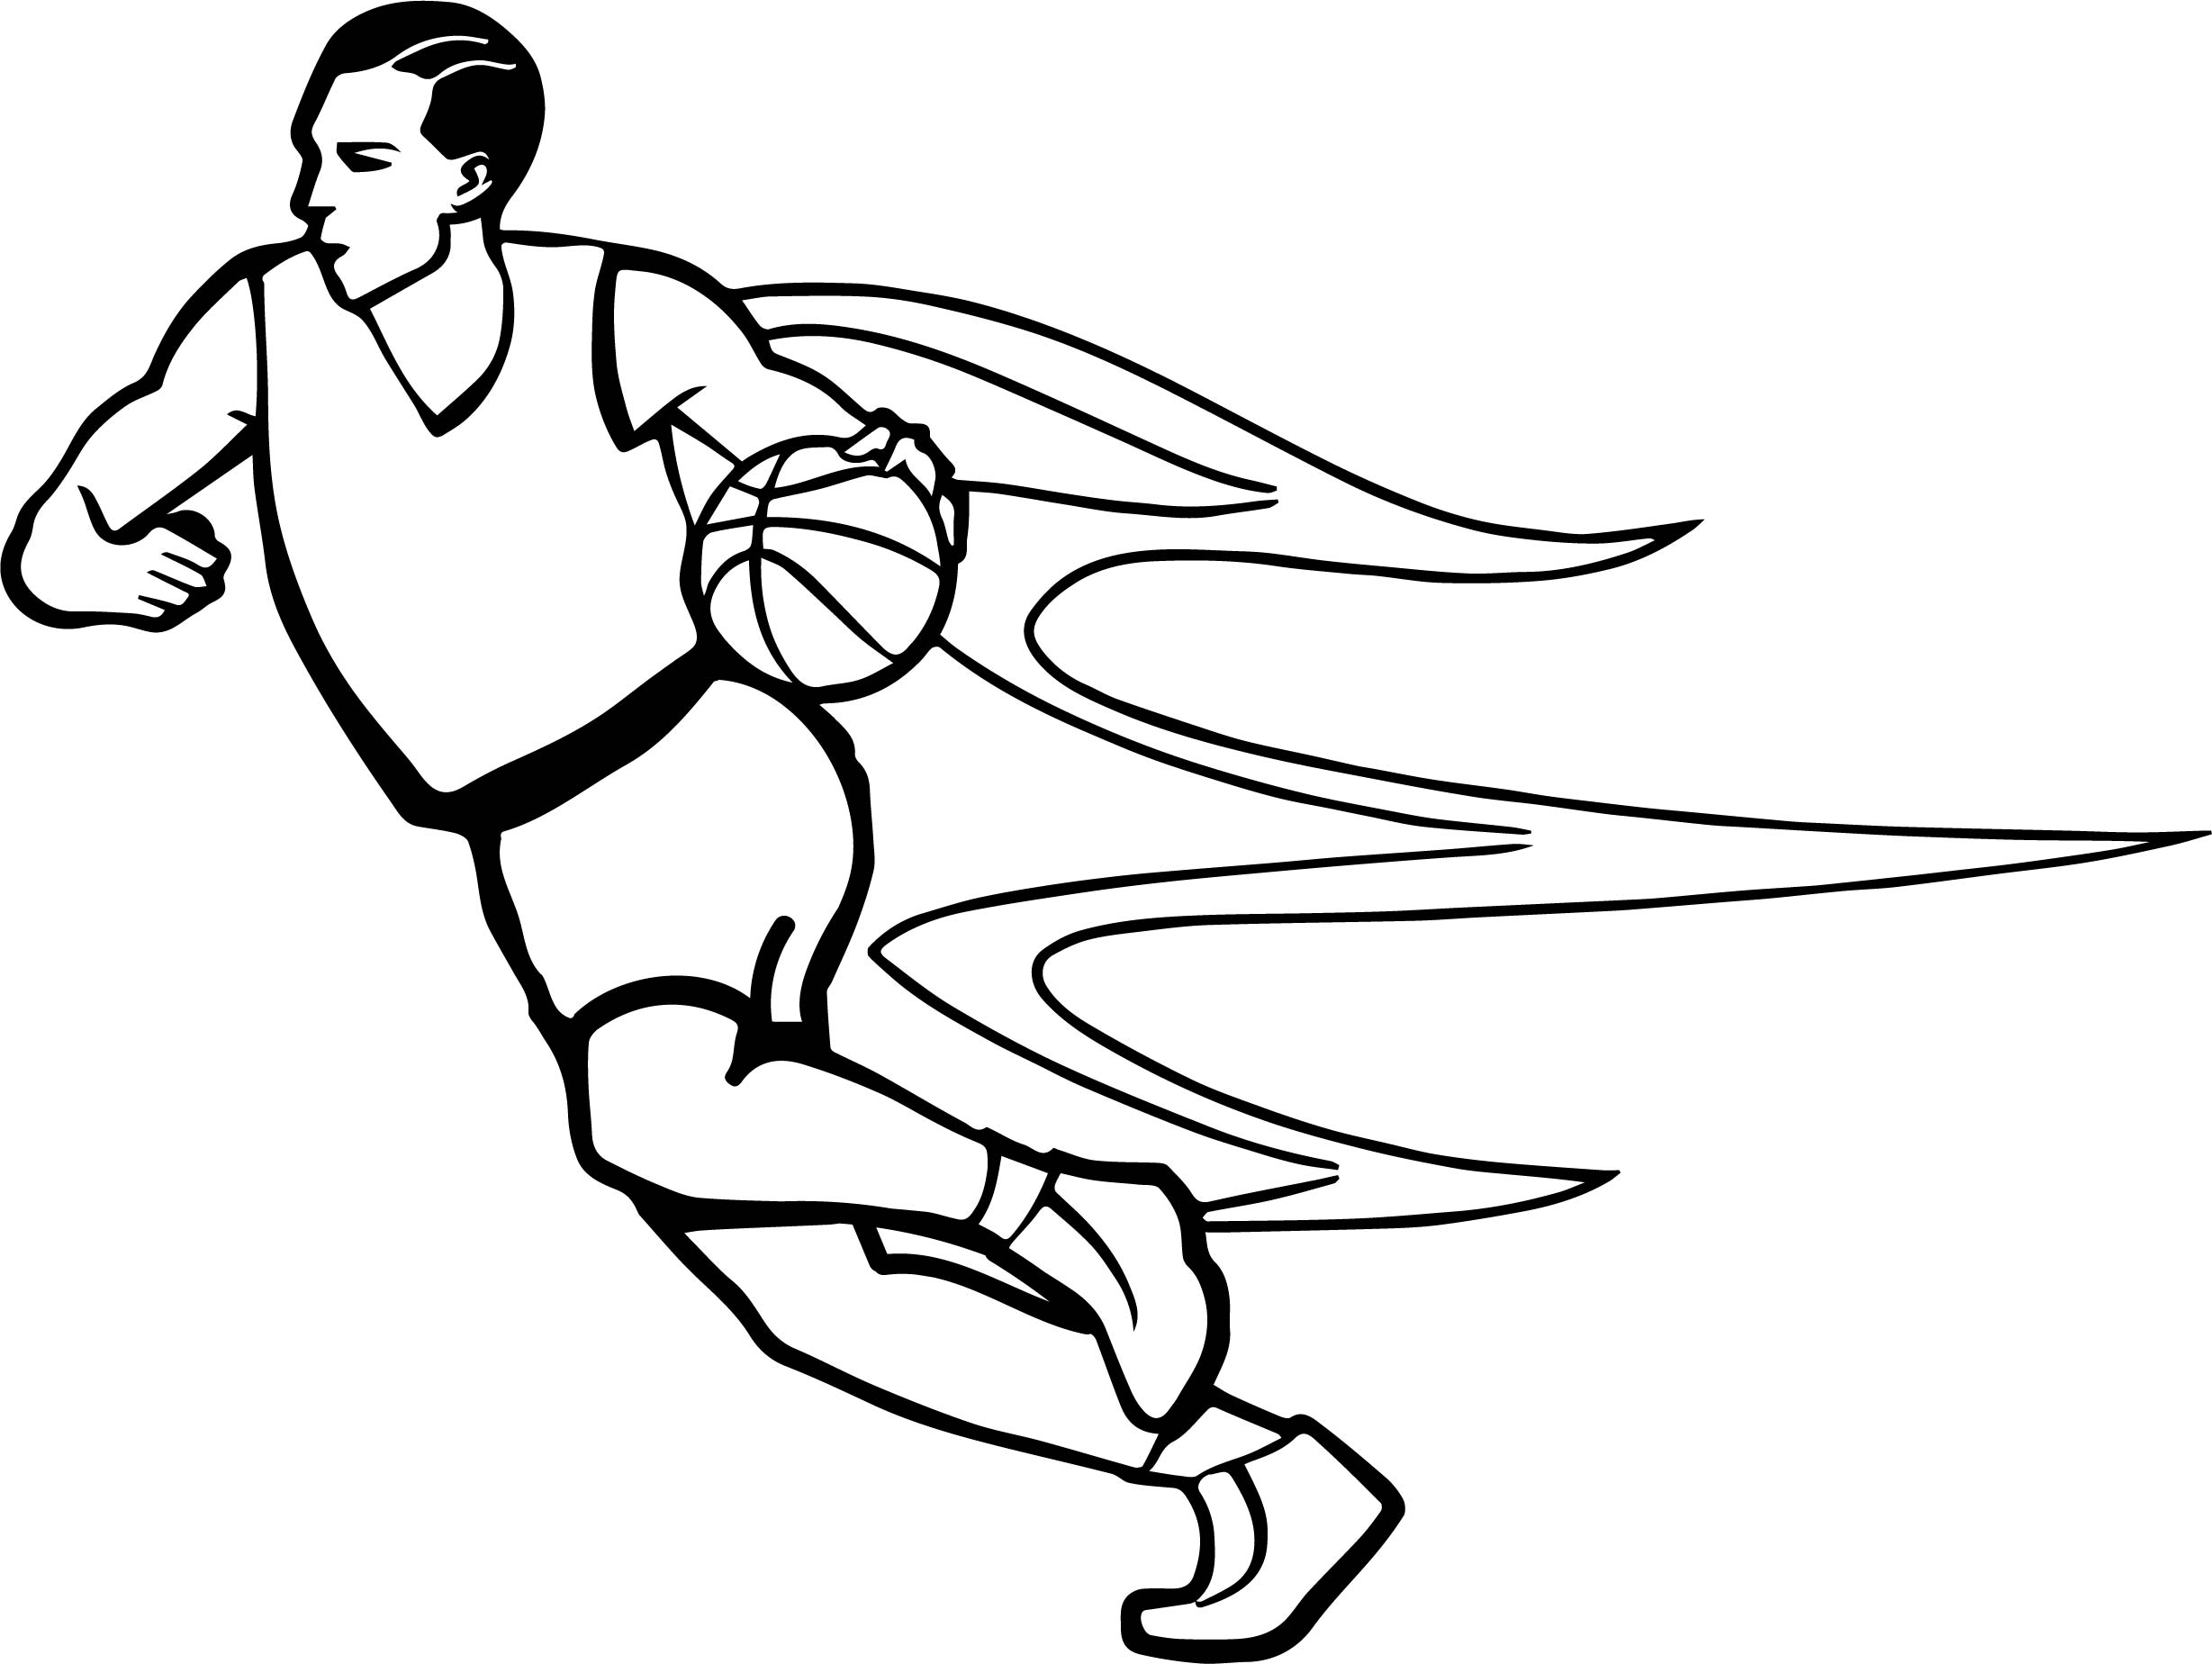 Too Fast Player Playing Basketball Coloring Page